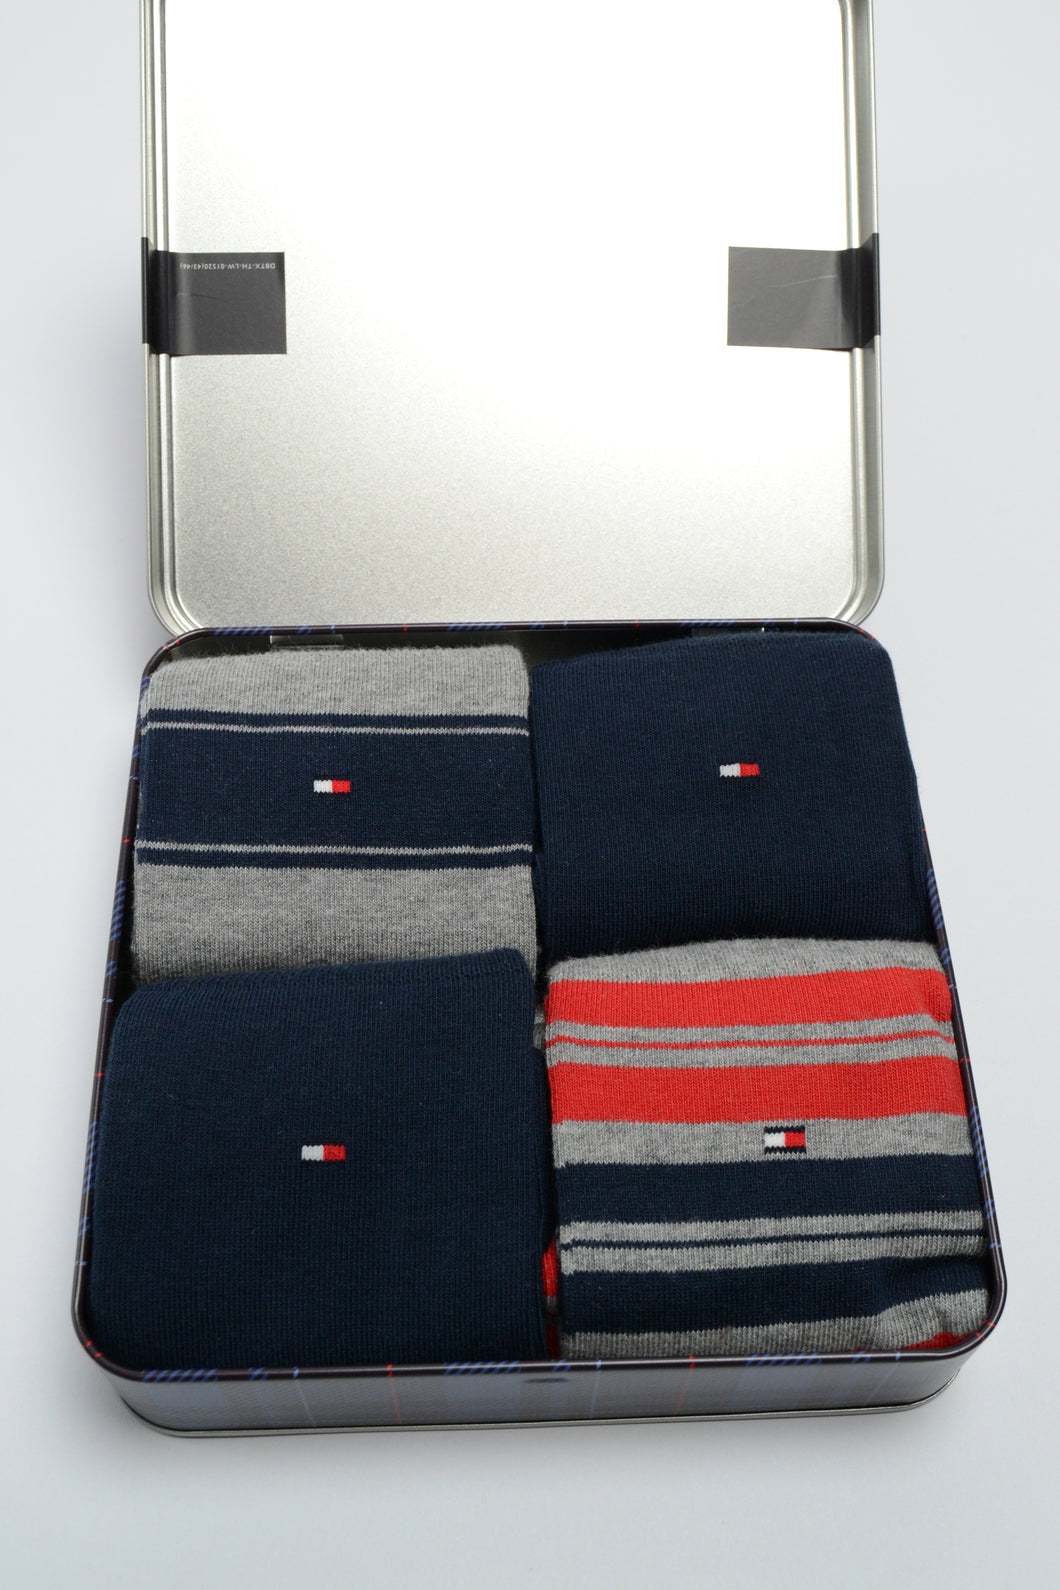 Tommy Hilfiger Socks, 4 Pair Gift Set, Navy/Grey